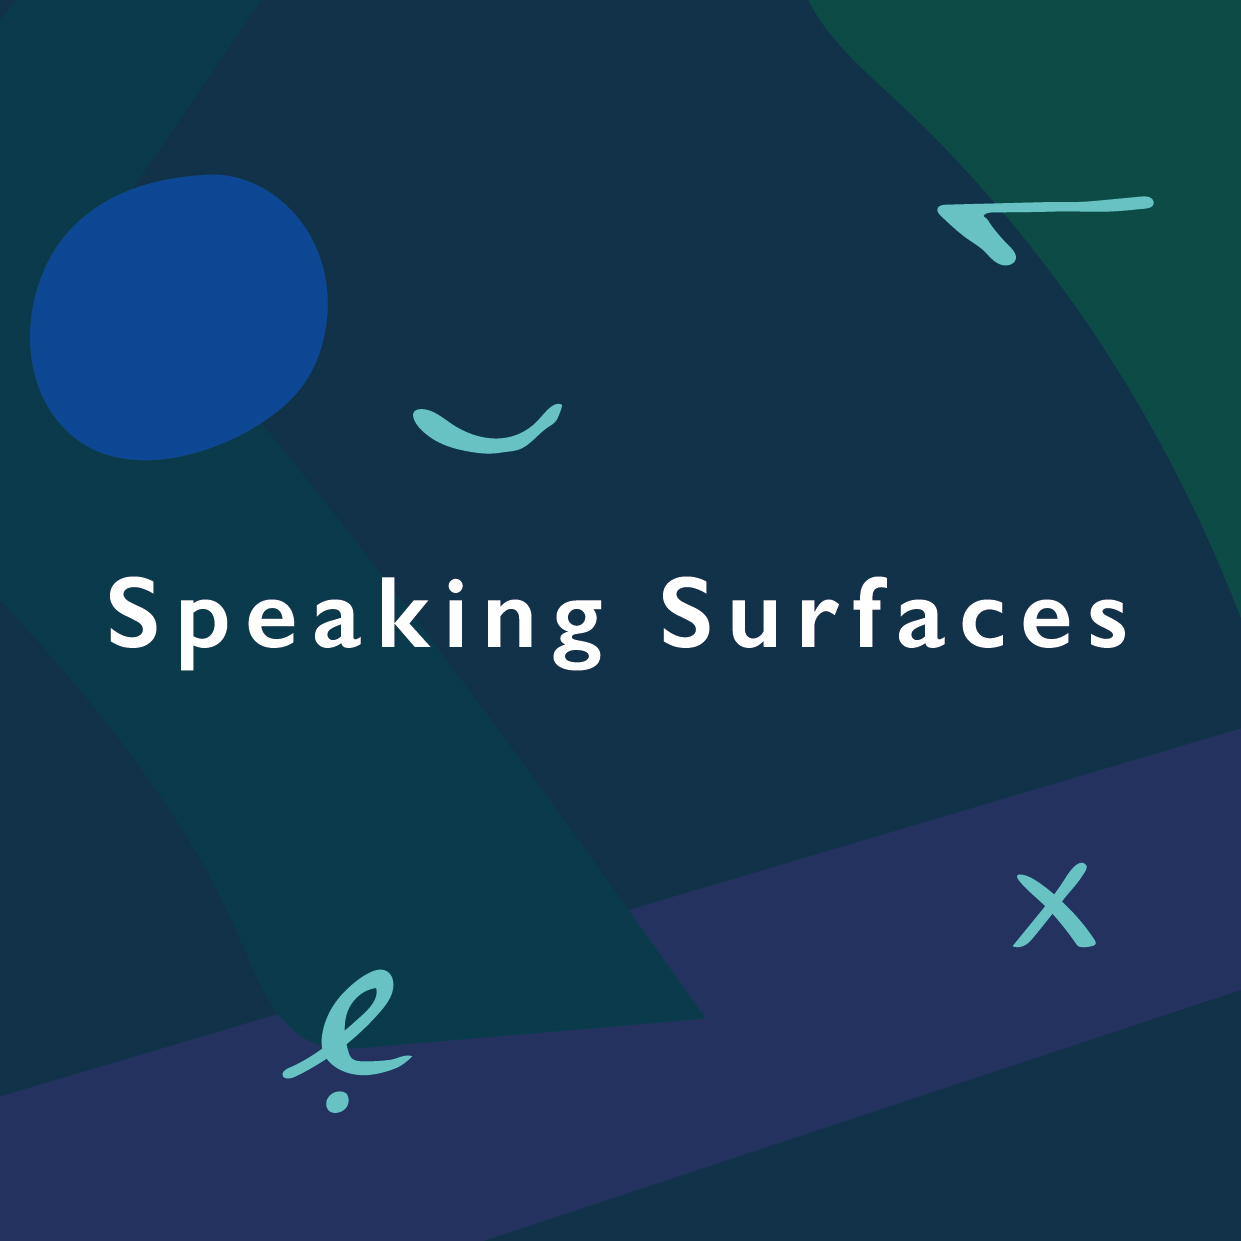 Speaking Surfaces